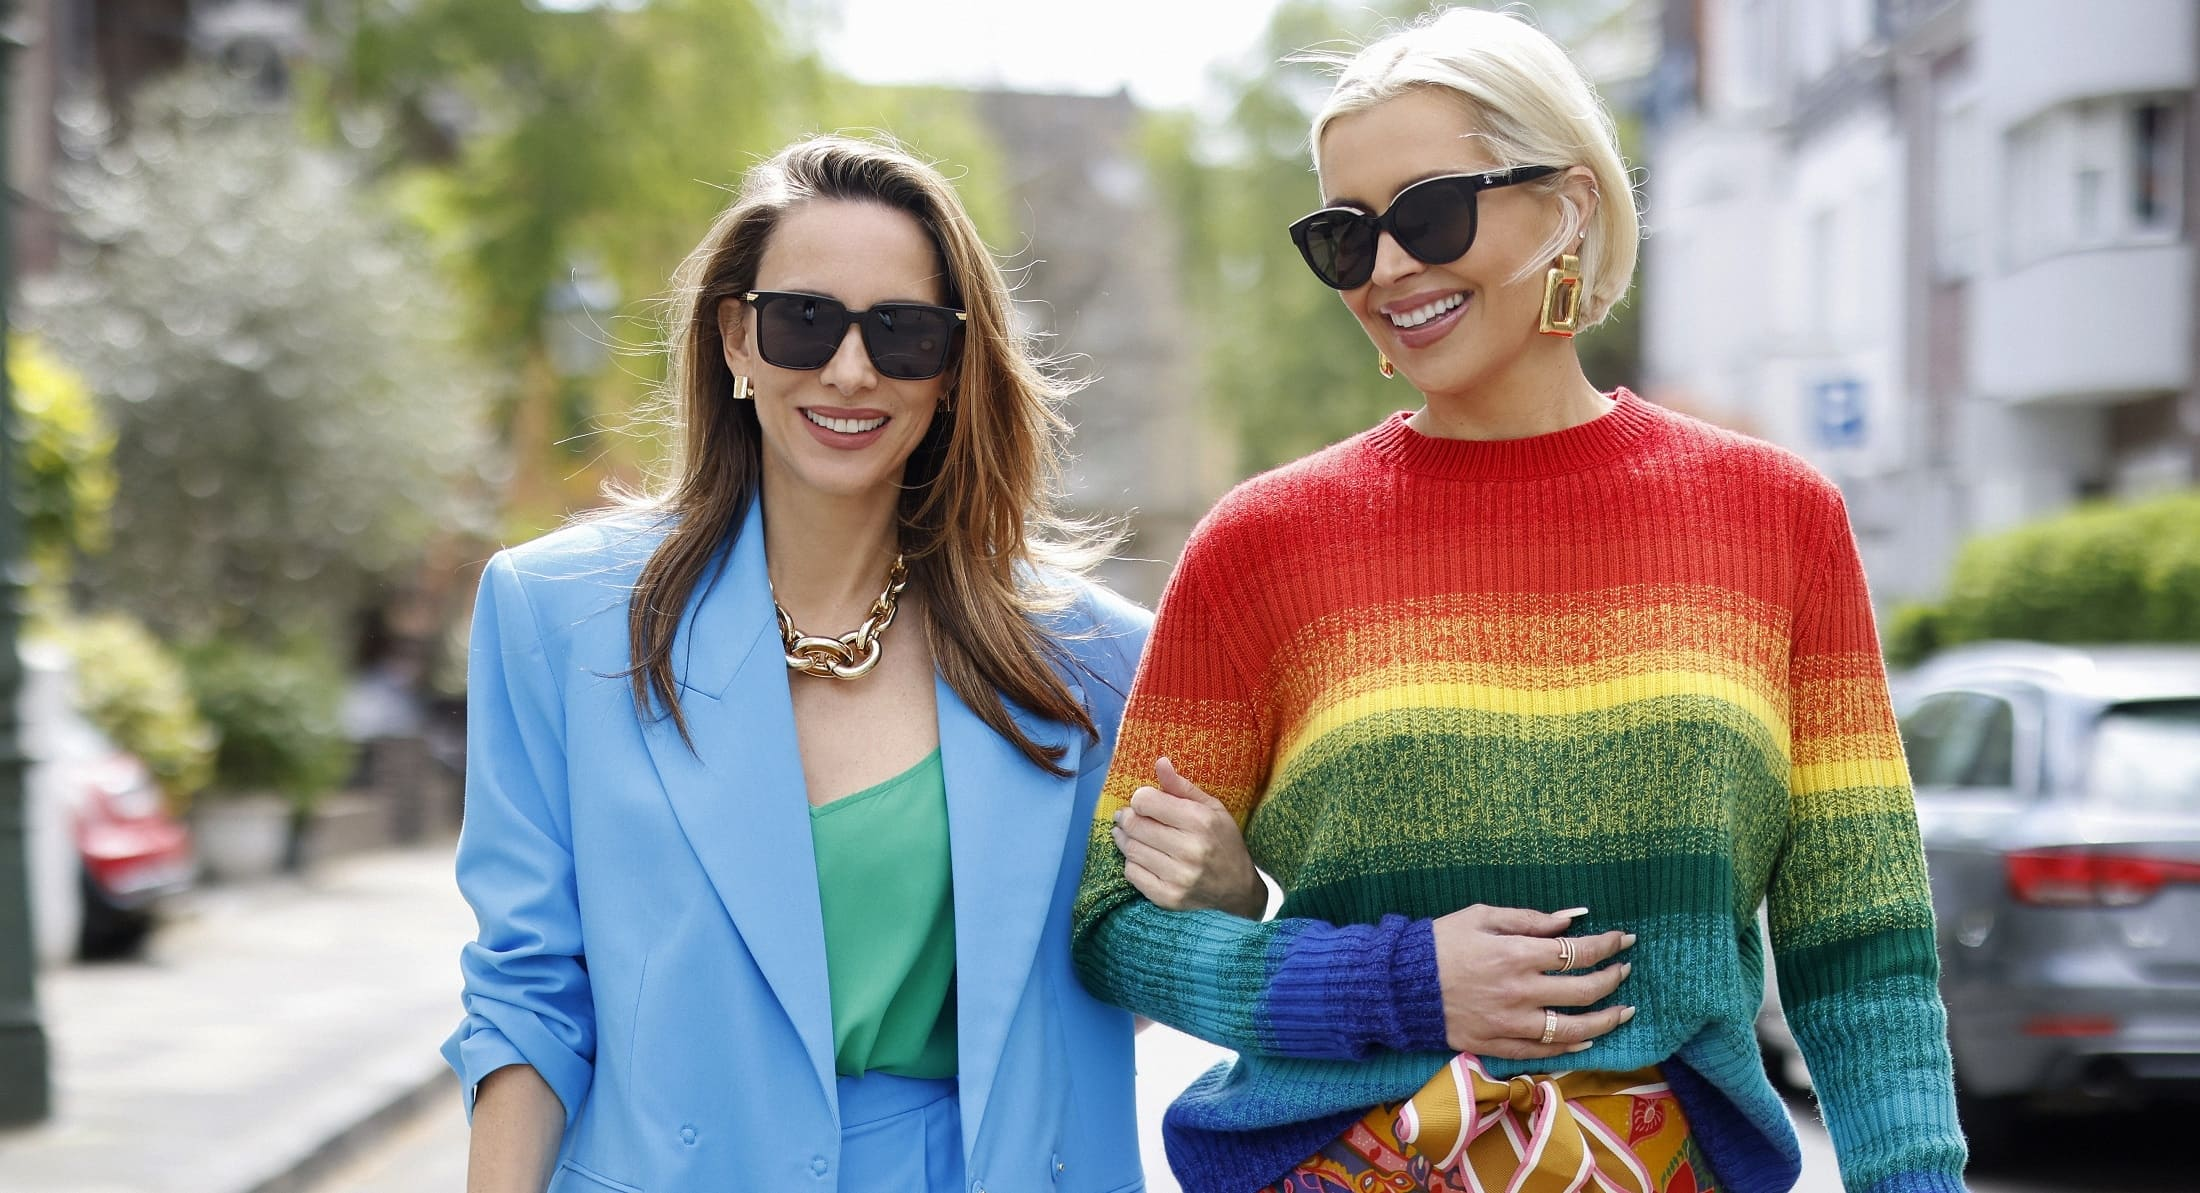 Streetstyleshooters/ German Select/ Getty Images